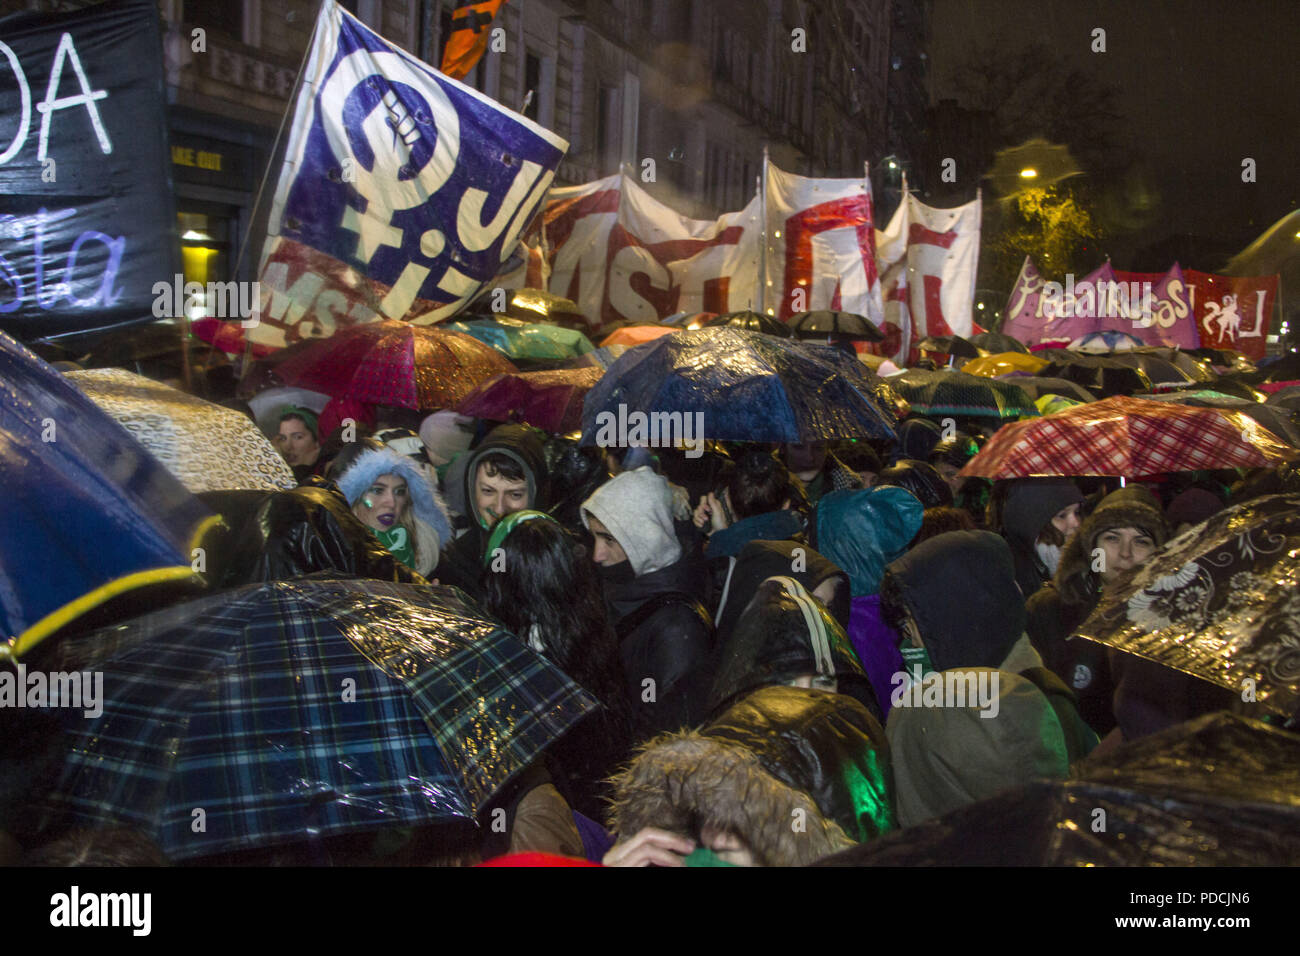 Buenos Aires, Federal Capital, Argentina. 9th Aug, 2018. In the vicinity of the Congress of the Argentine Nation thousands of people gathered and remained patient waiting for the vote of the Senate for or against the Law for Legal and Free Abortion, regardless of the inclement weather conditions. Credit: Roberto Almeida Aveledo/ZUMA Wire/Alamy Live News - Stock Image